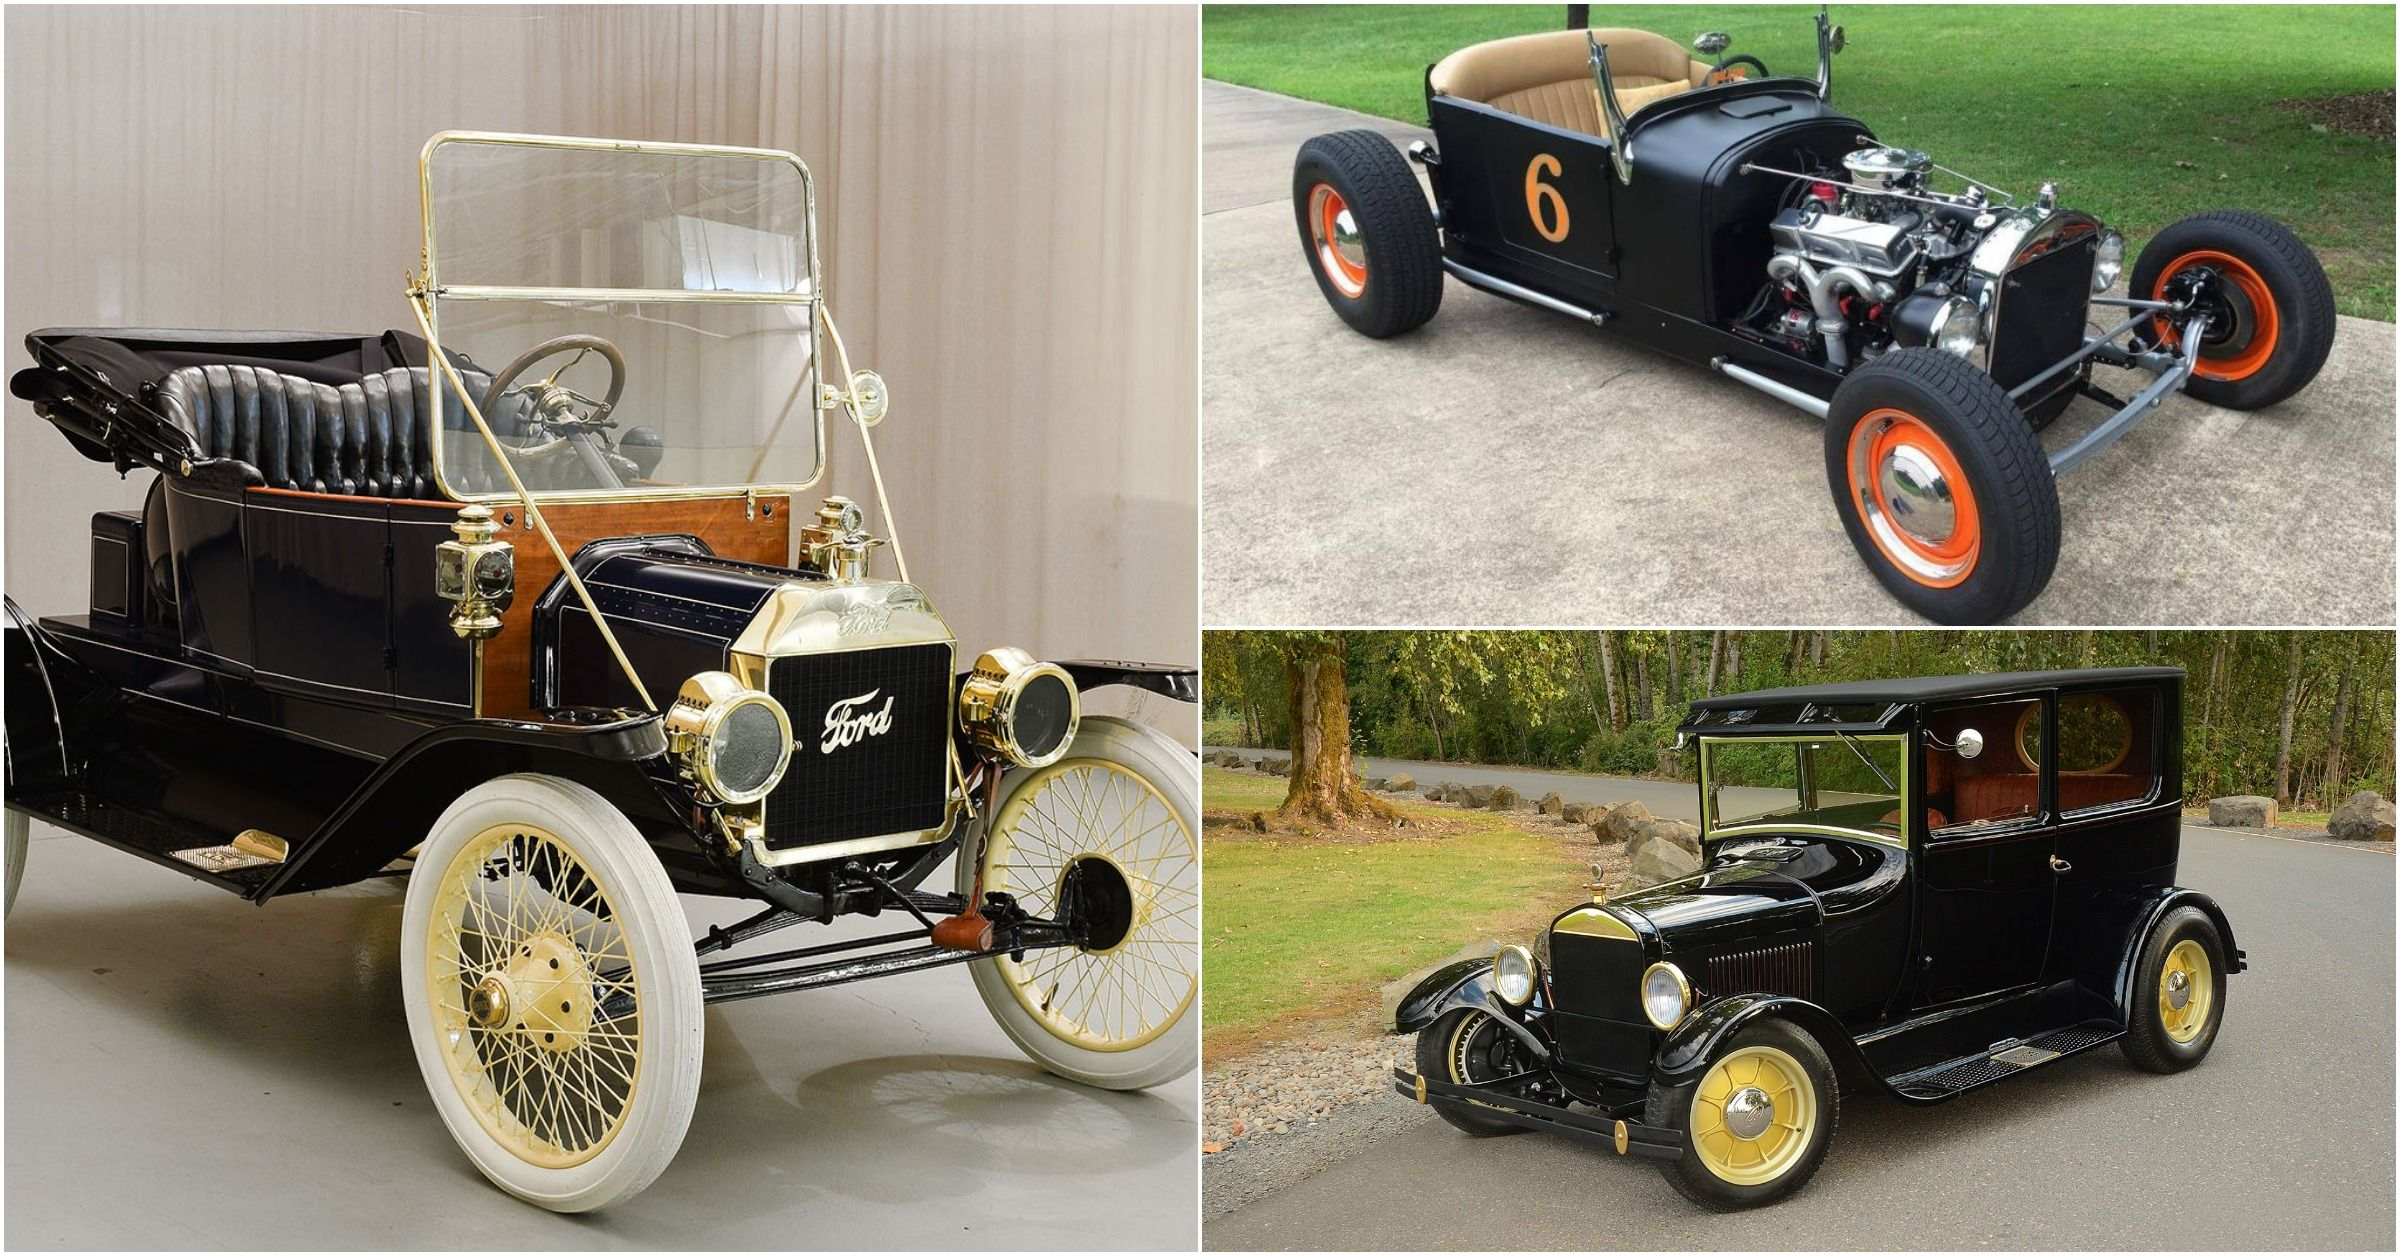 15 Photos Of The Ford Model T That Make You Want One